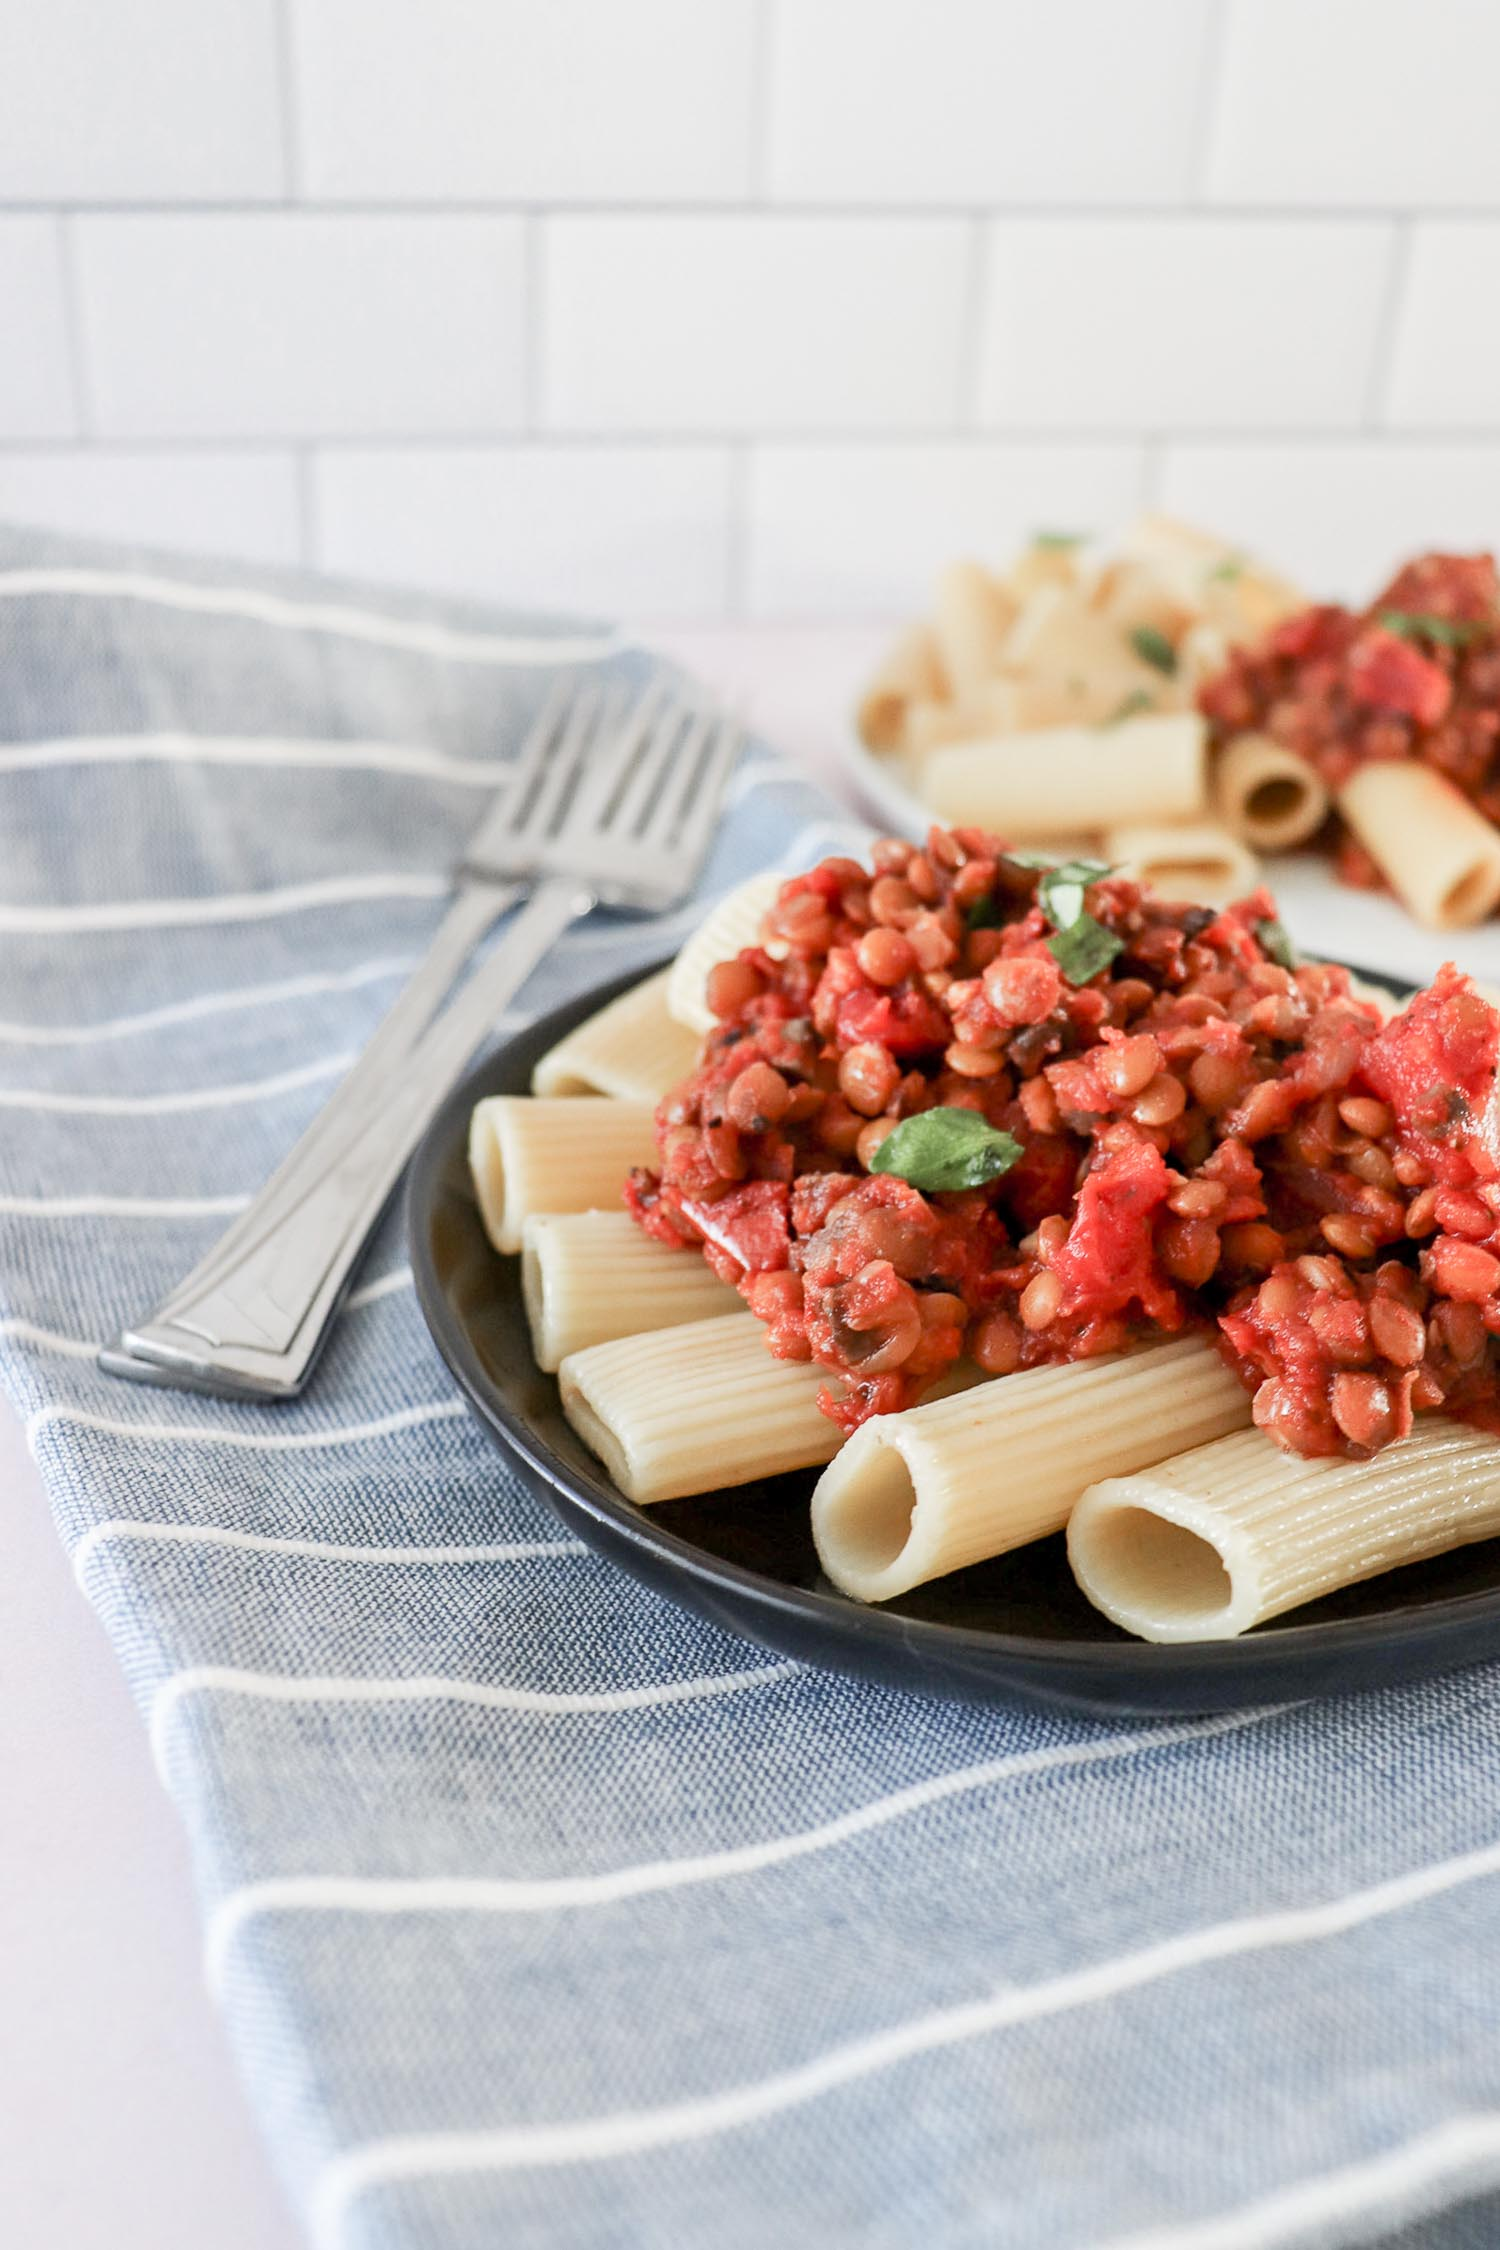 Two servings of pasta with Bolognese on it on white and black plates with two silver forks on a blue and white towel.